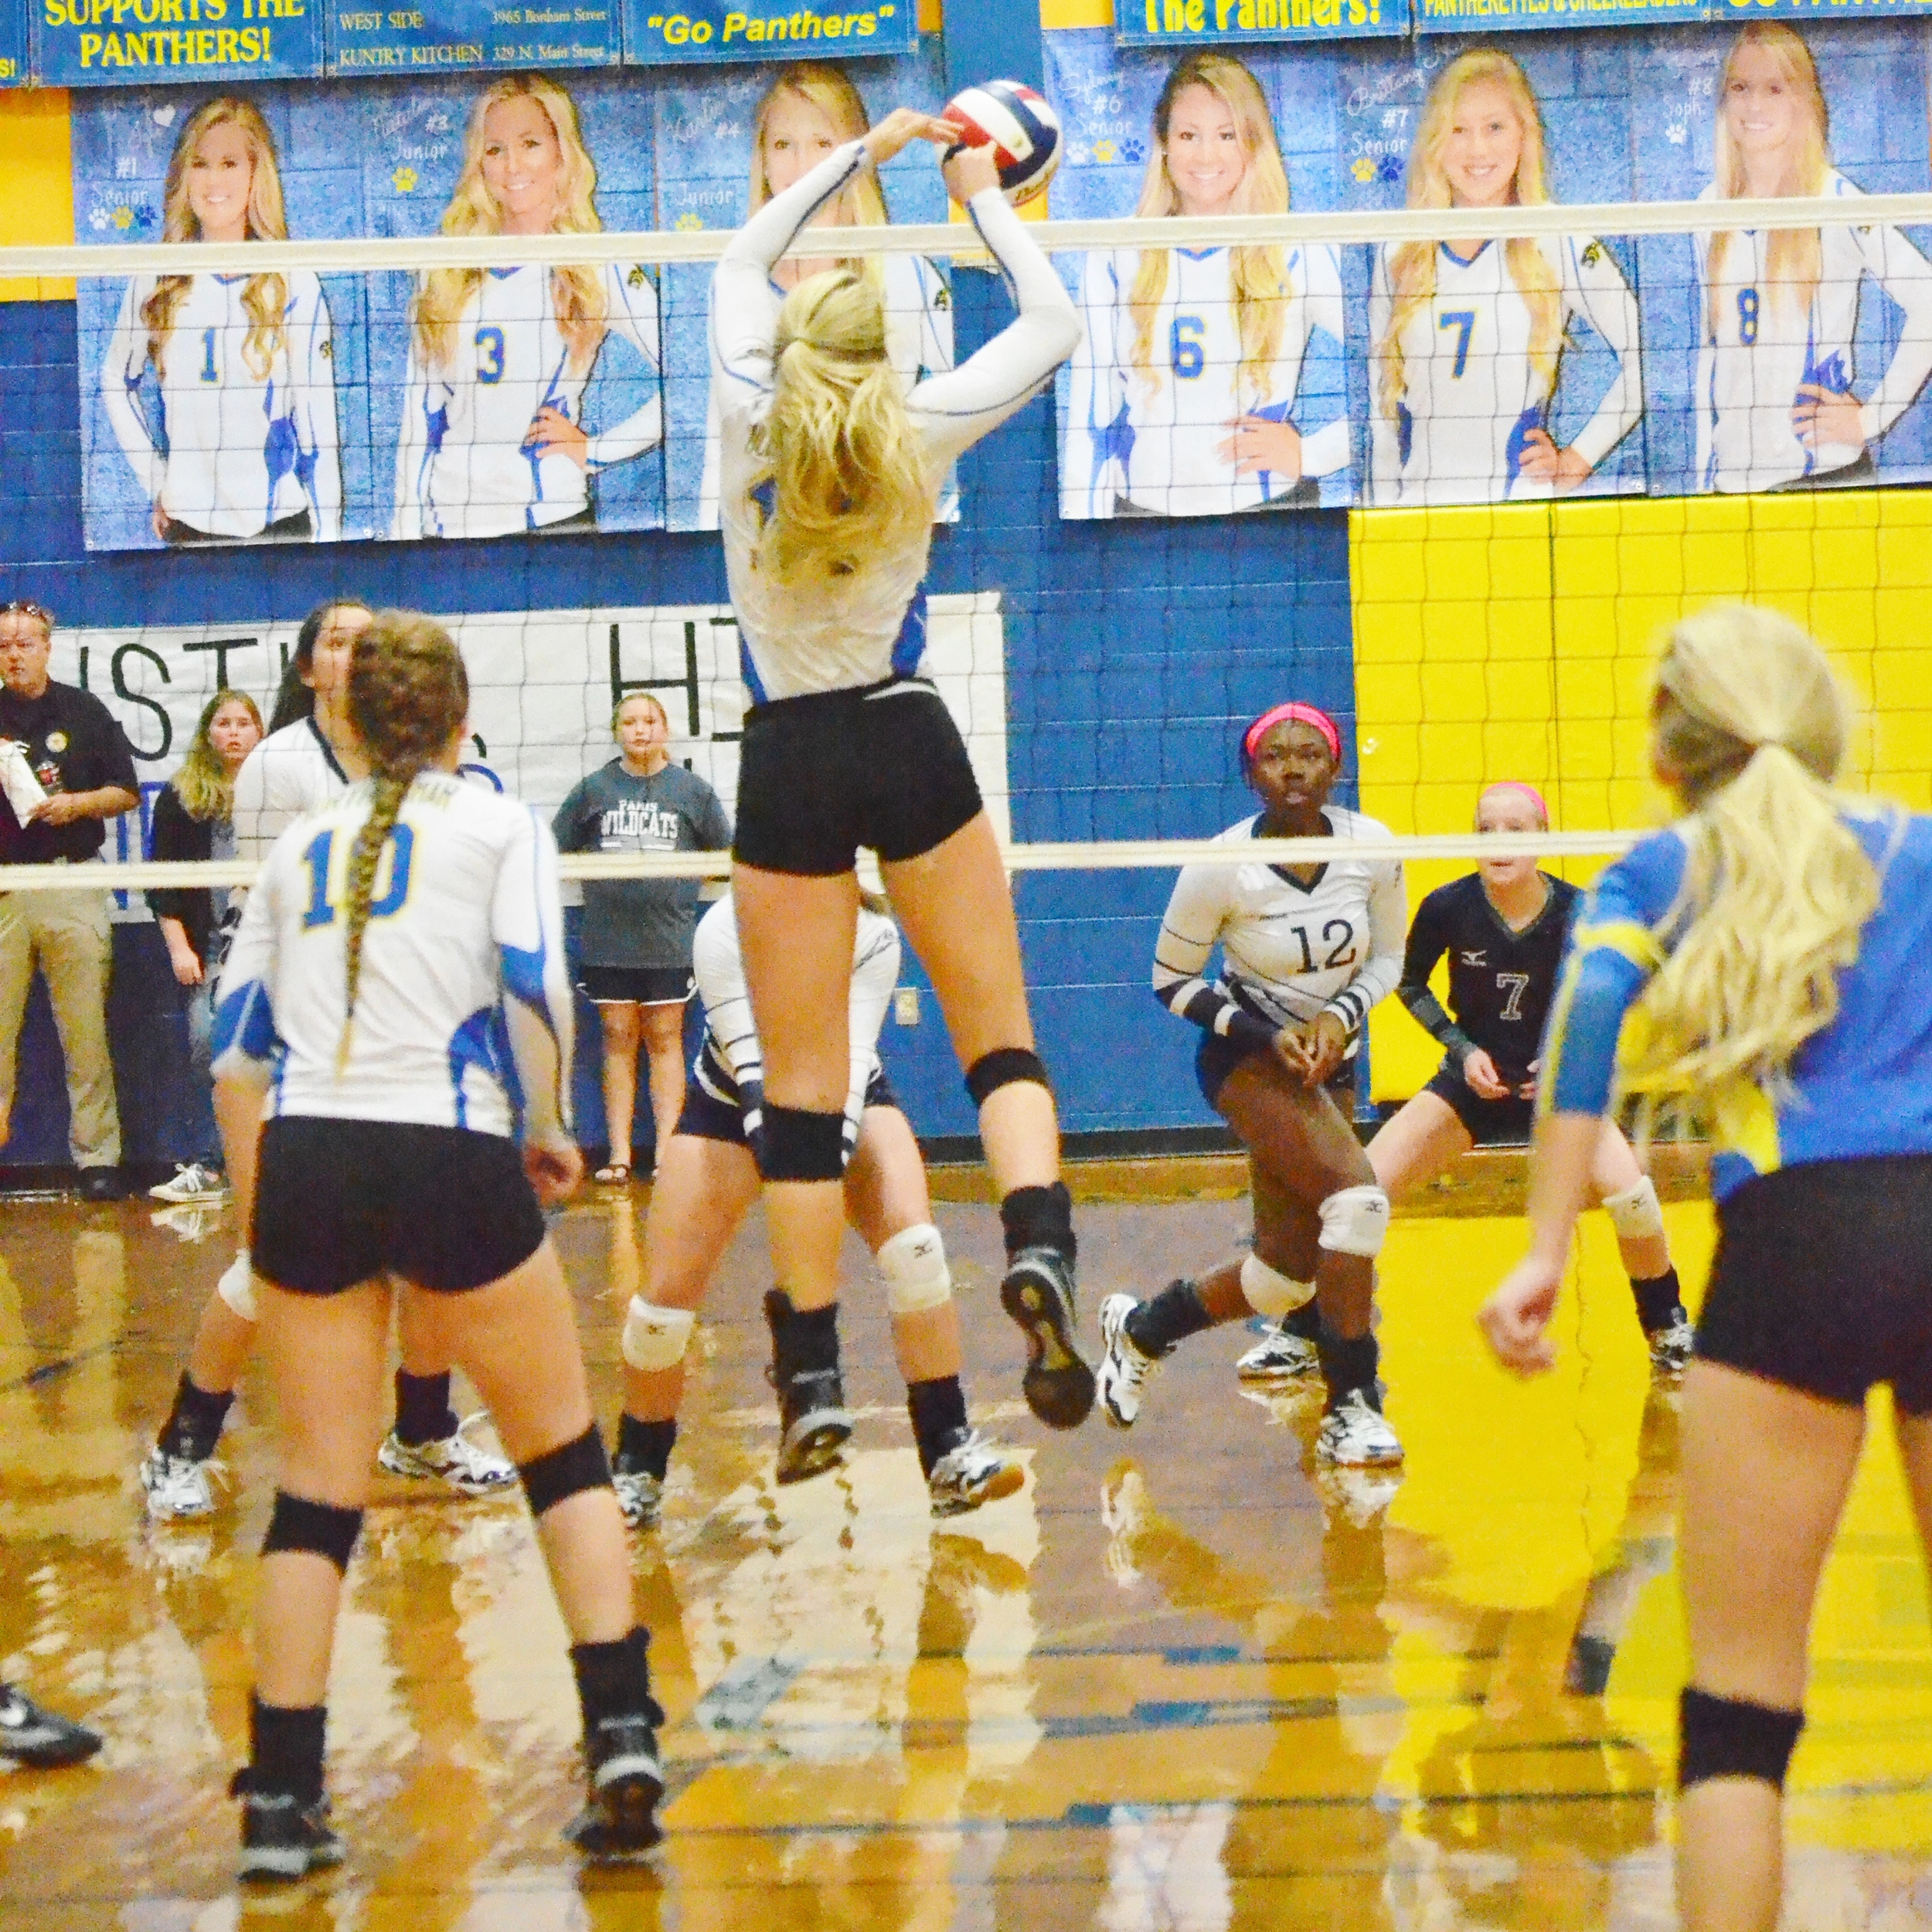 (Photo by Beverly White) Sydney Foy (14) hitting the ball at the net against Paris earlier this year while Bailee Nickerson (10) and Brittany Nichols (blue jersey) watch.